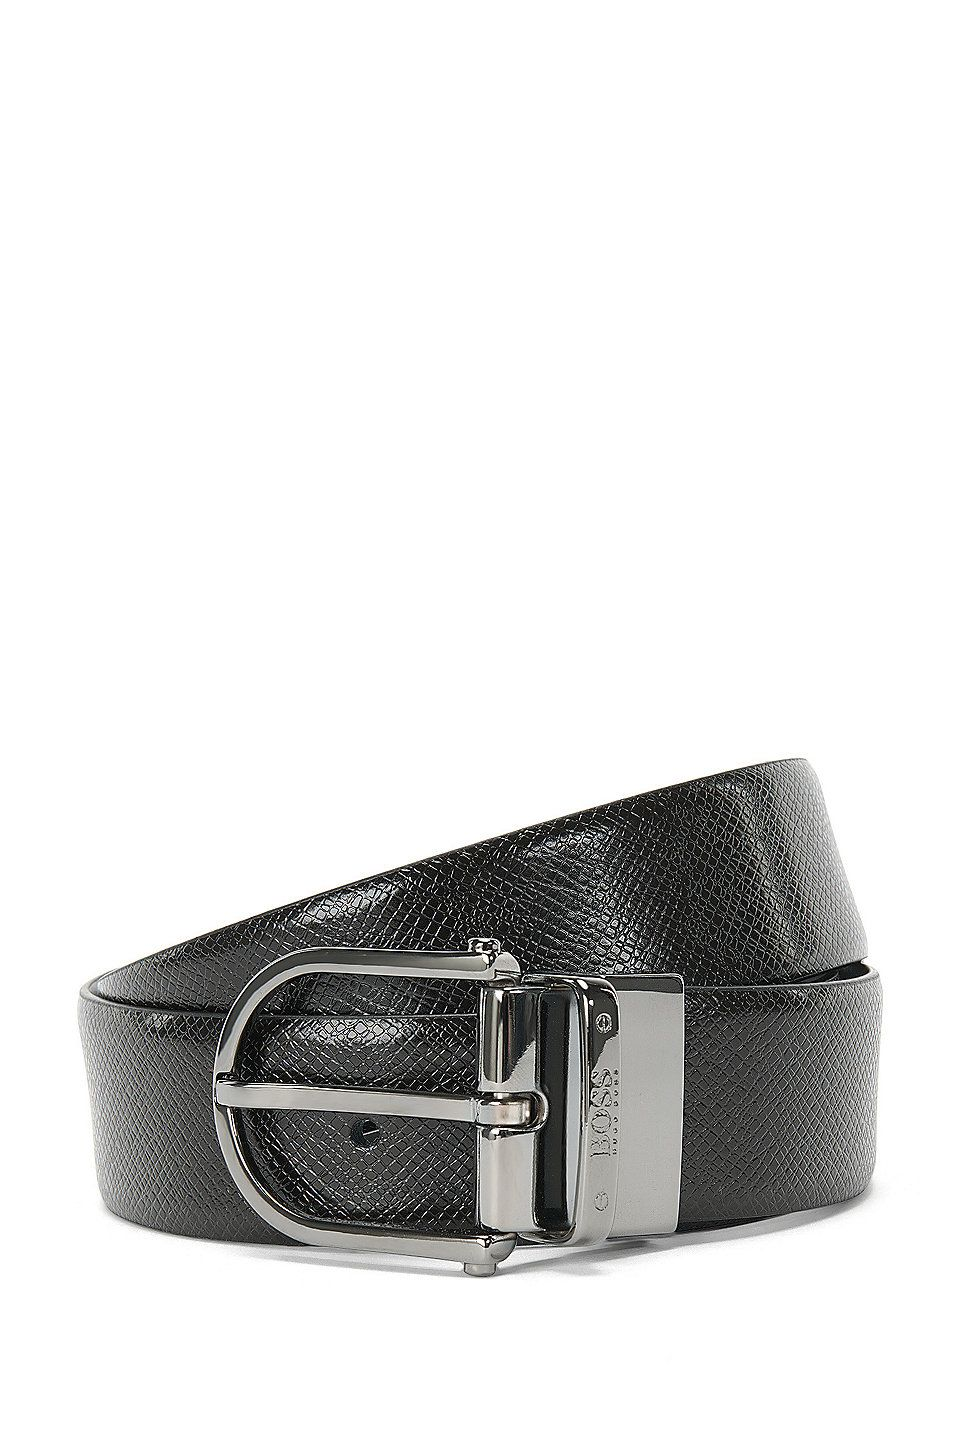 d7963b472db0 HUGO BOSS Reversible leather belt with a pin buckle   Otis Or35 ps  - Black  Business